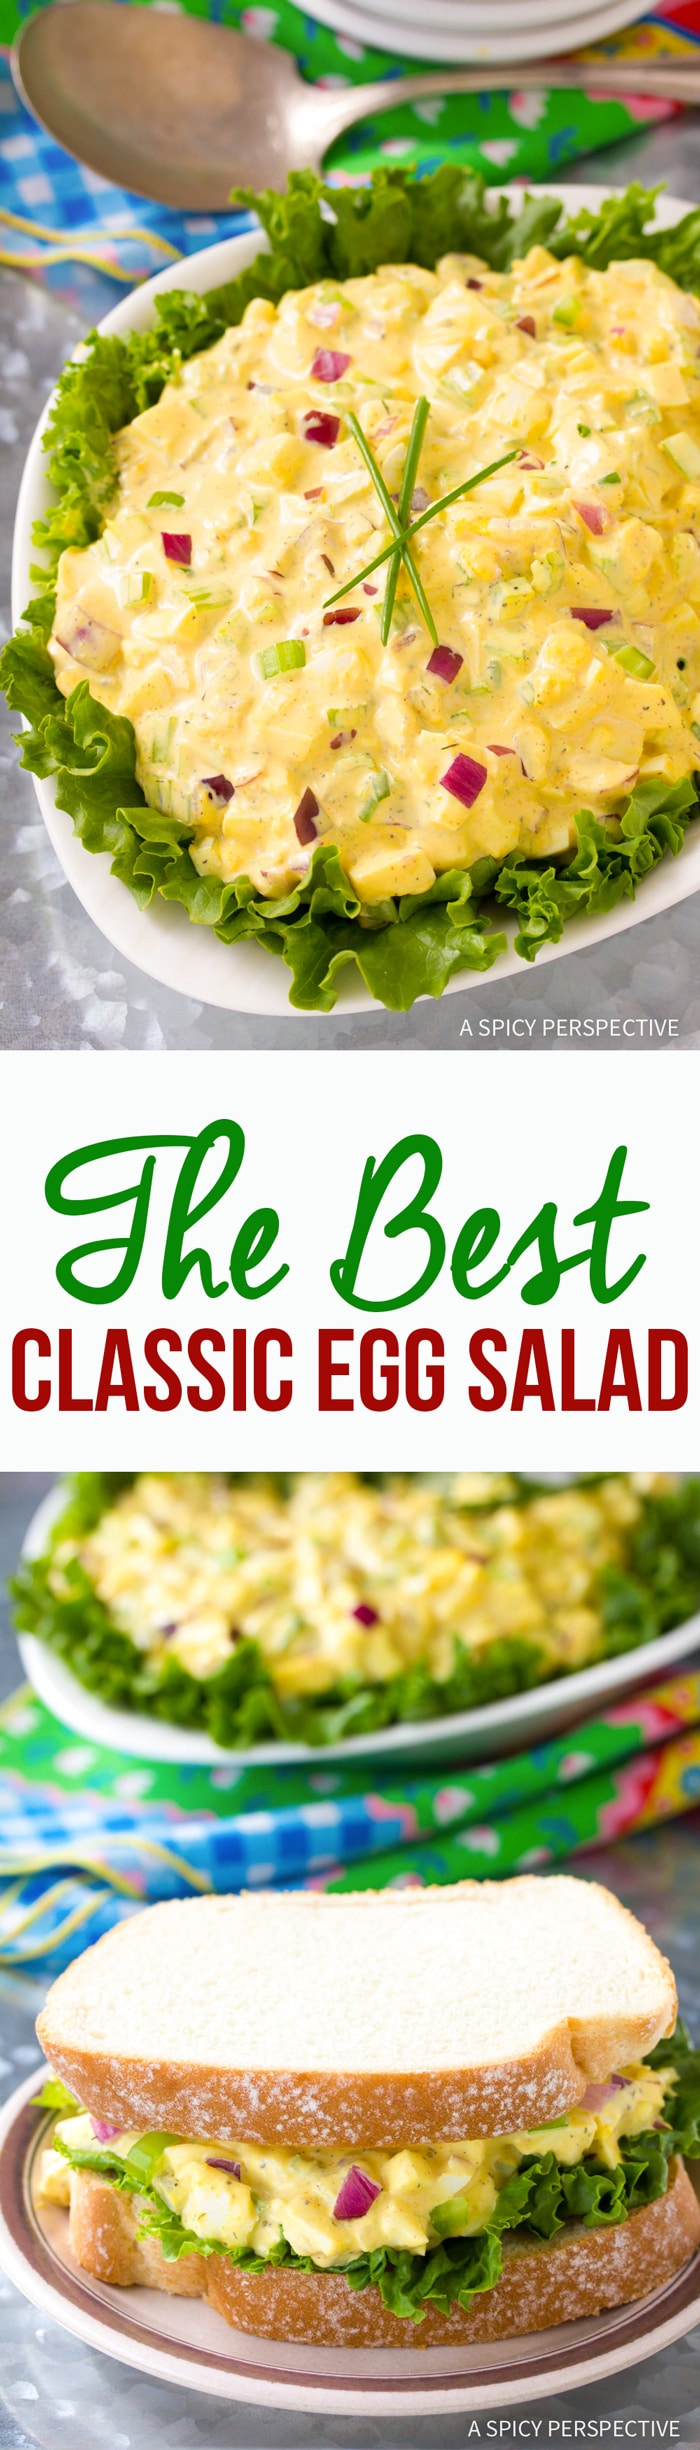 The BEST Classic Egg Salad Recipe